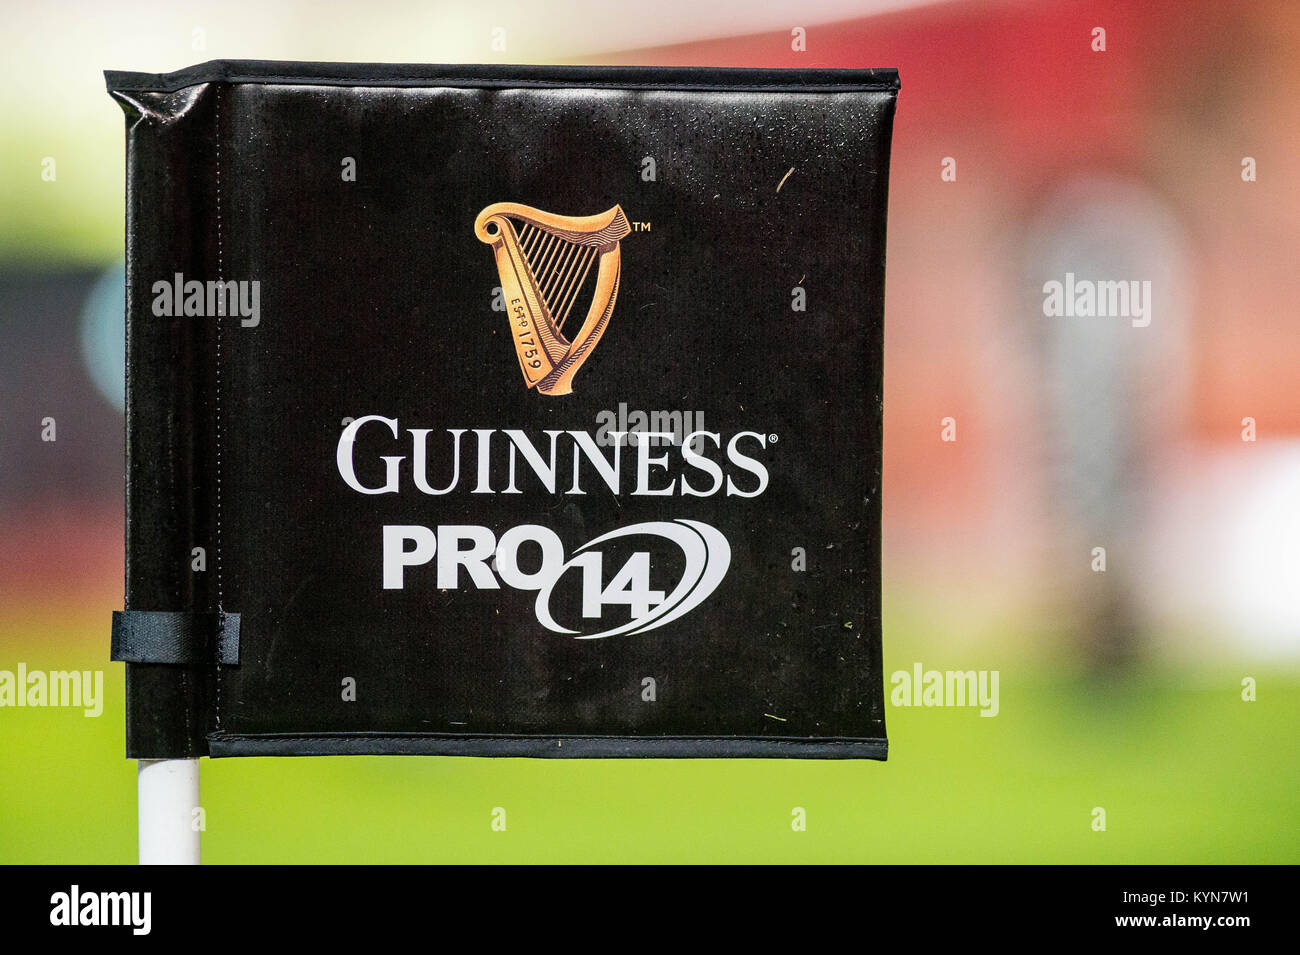 LONDON, ENGLAND - OCTOBER 28: Guinness pro 14 flag ahead of the Premier League match between Arsenal and Swansea - Stock Image